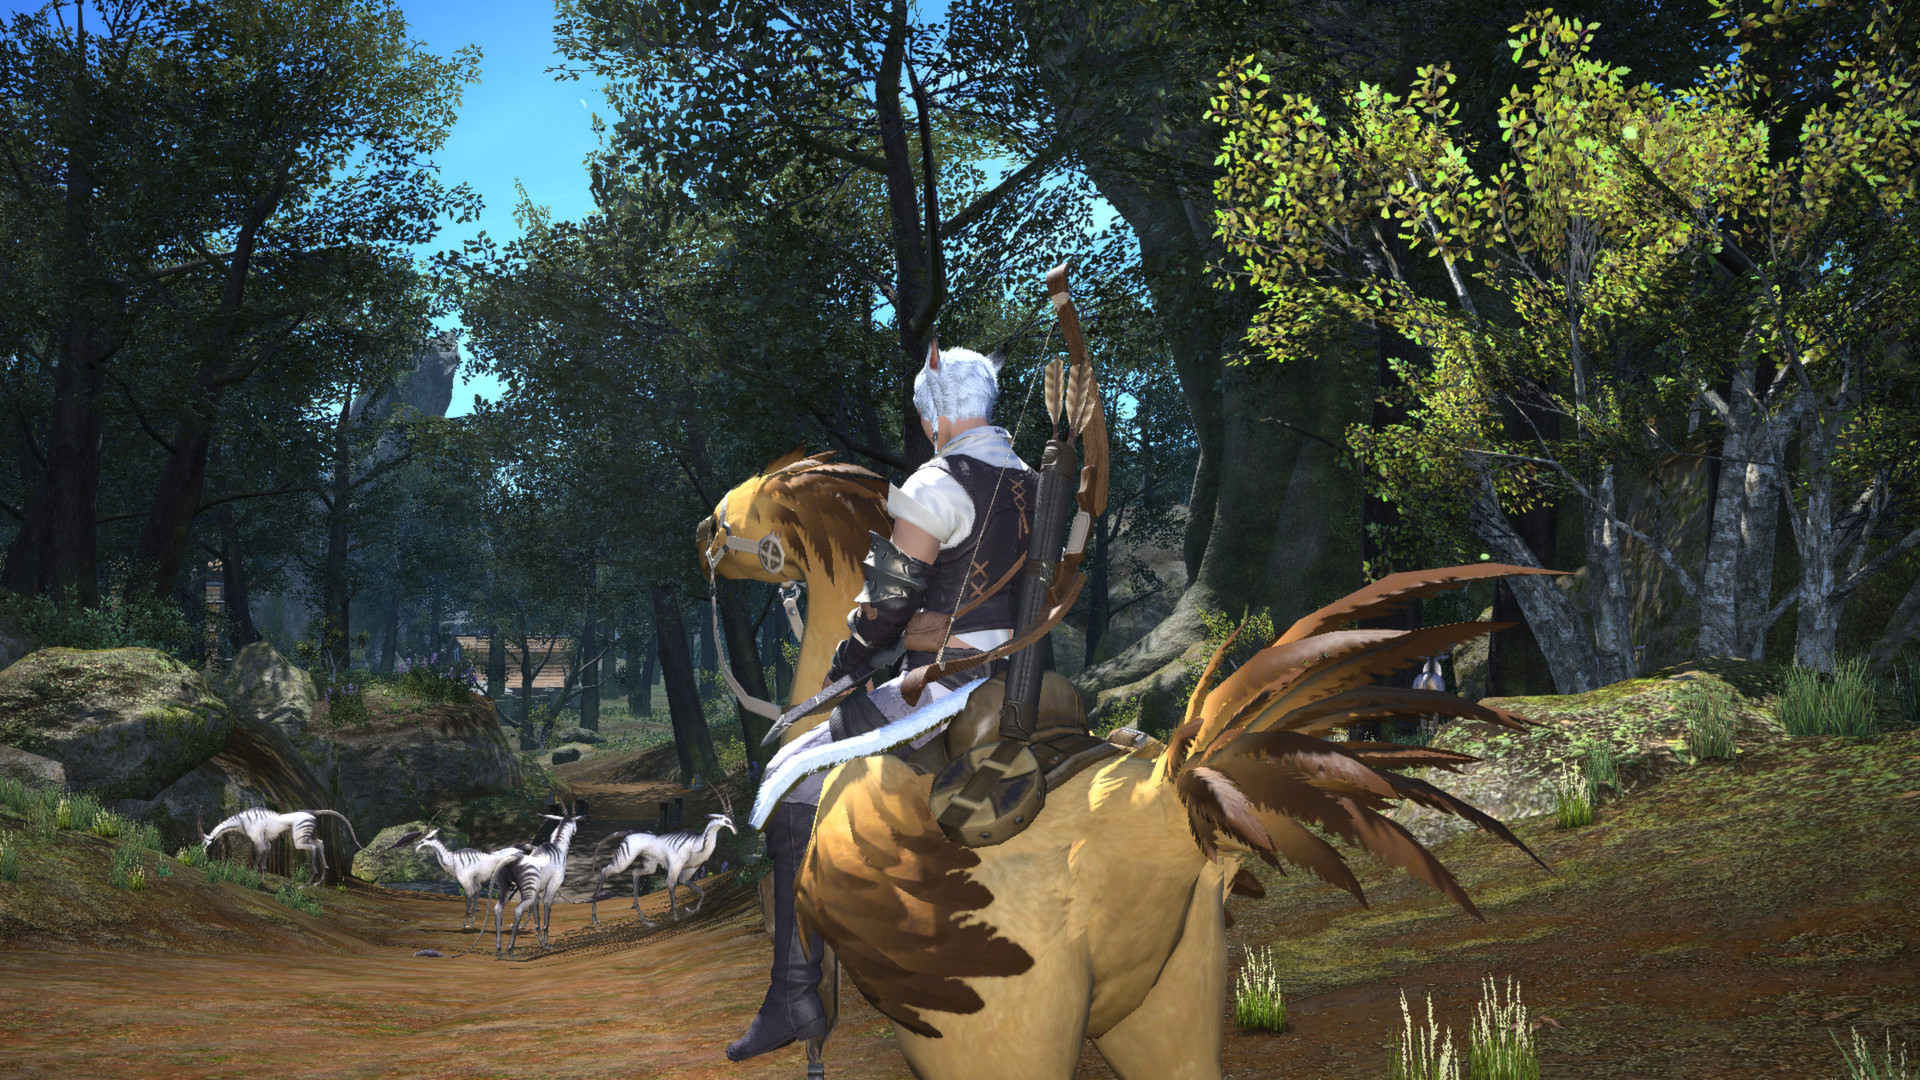 FINAL FANTASY XIV Online System Requirements - Can I Run It